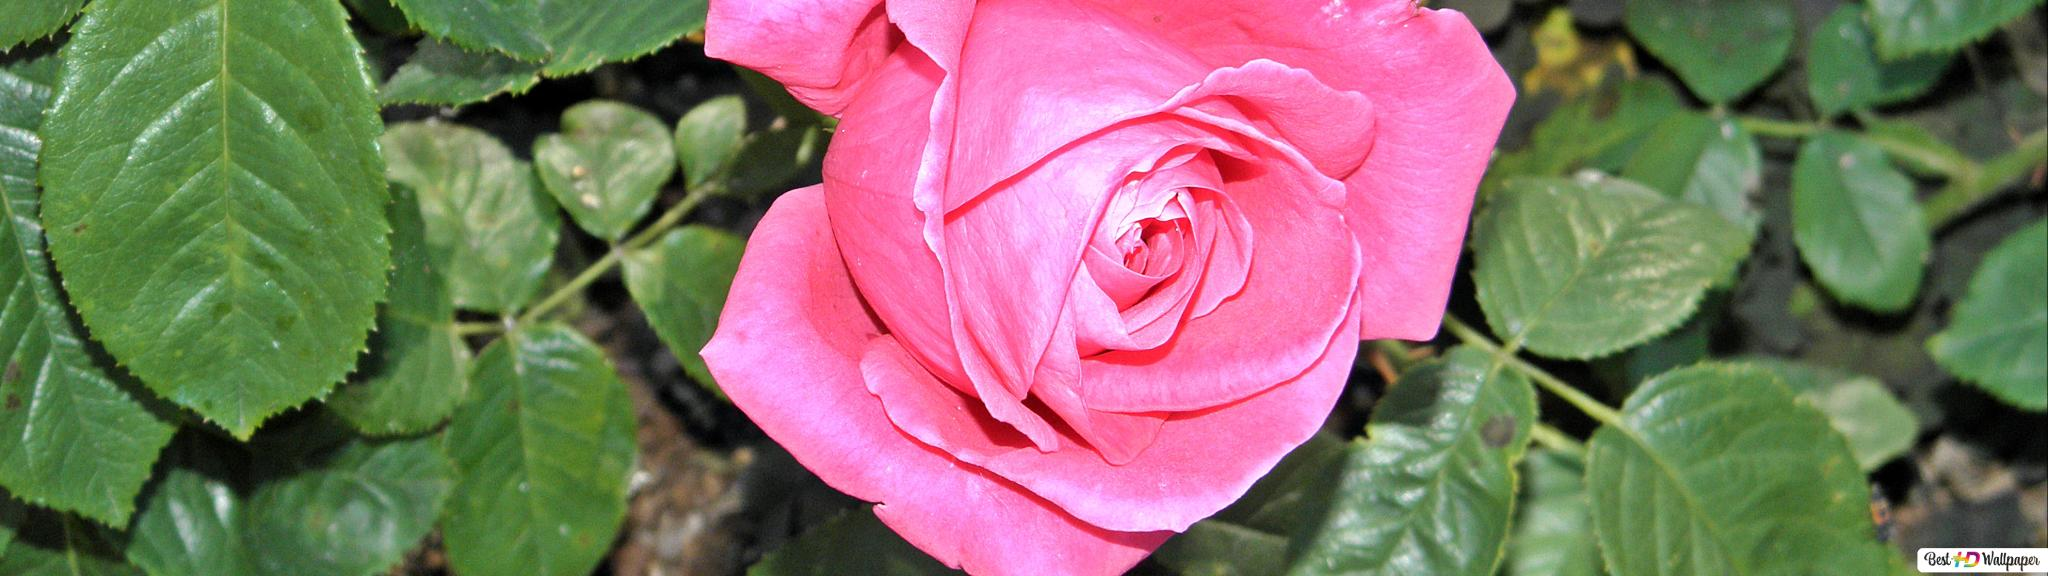 Beautiful Pink Rose Flowers Images Hd Bestholidaydeals Co